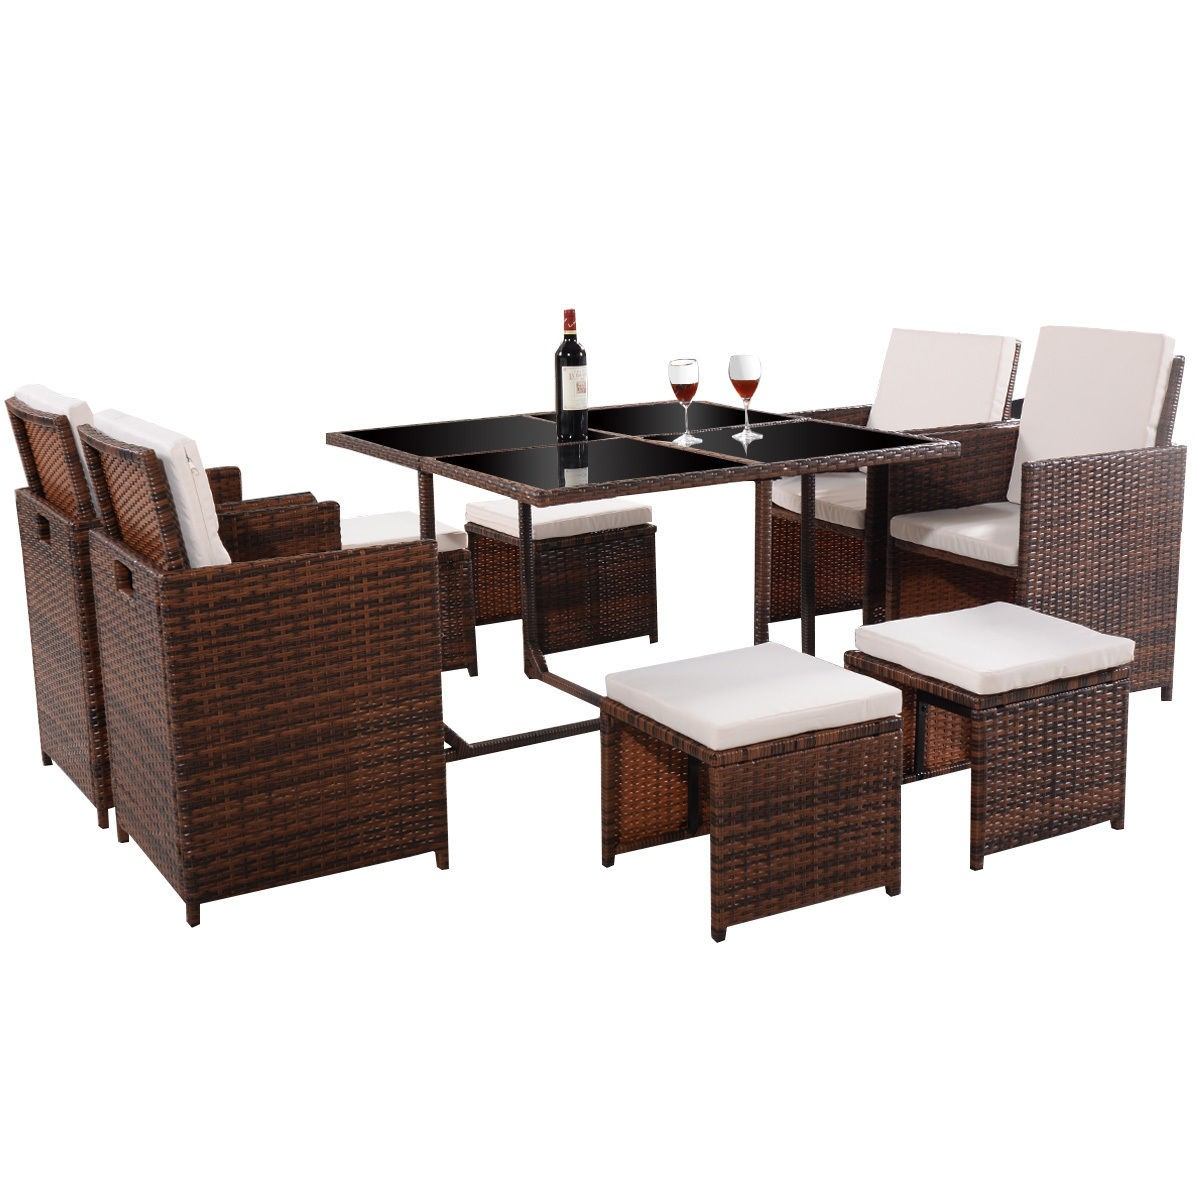 brown 9 pc mix patio garden rattan wicker sofa set furniture cushioned w ottoman. Black Bedroom Furniture Sets. Home Design Ideas